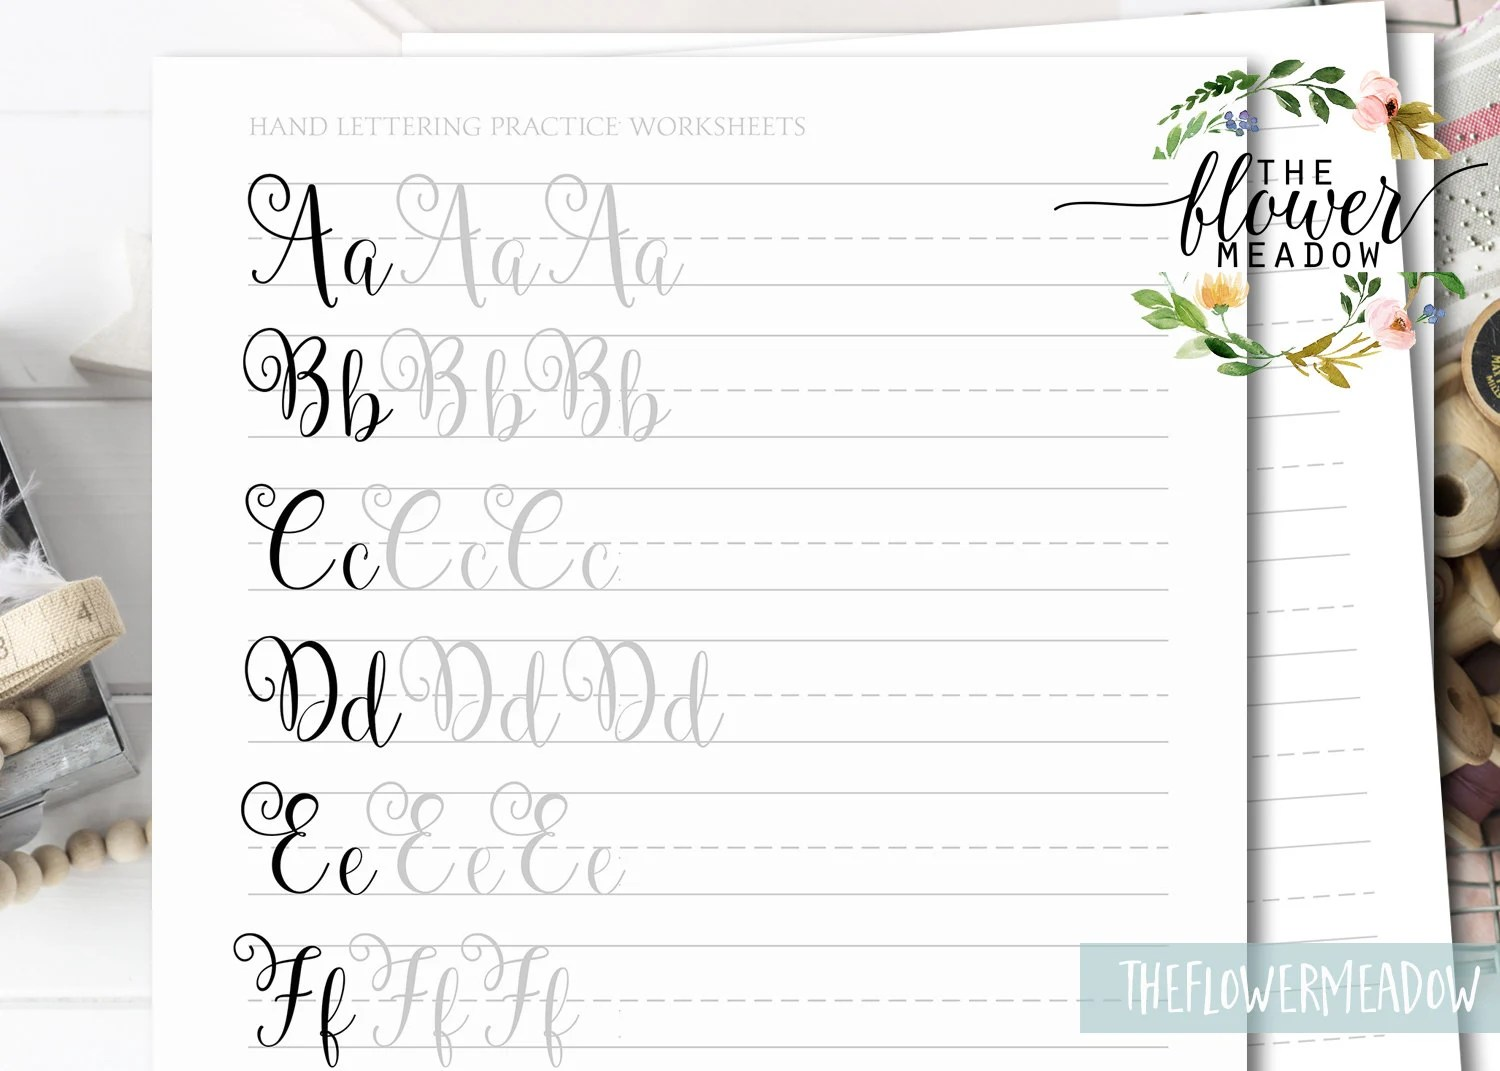 Learn Calligraphy Hand Lettering Guide Calligraphy Tutorial Modern Lettering Worksheets